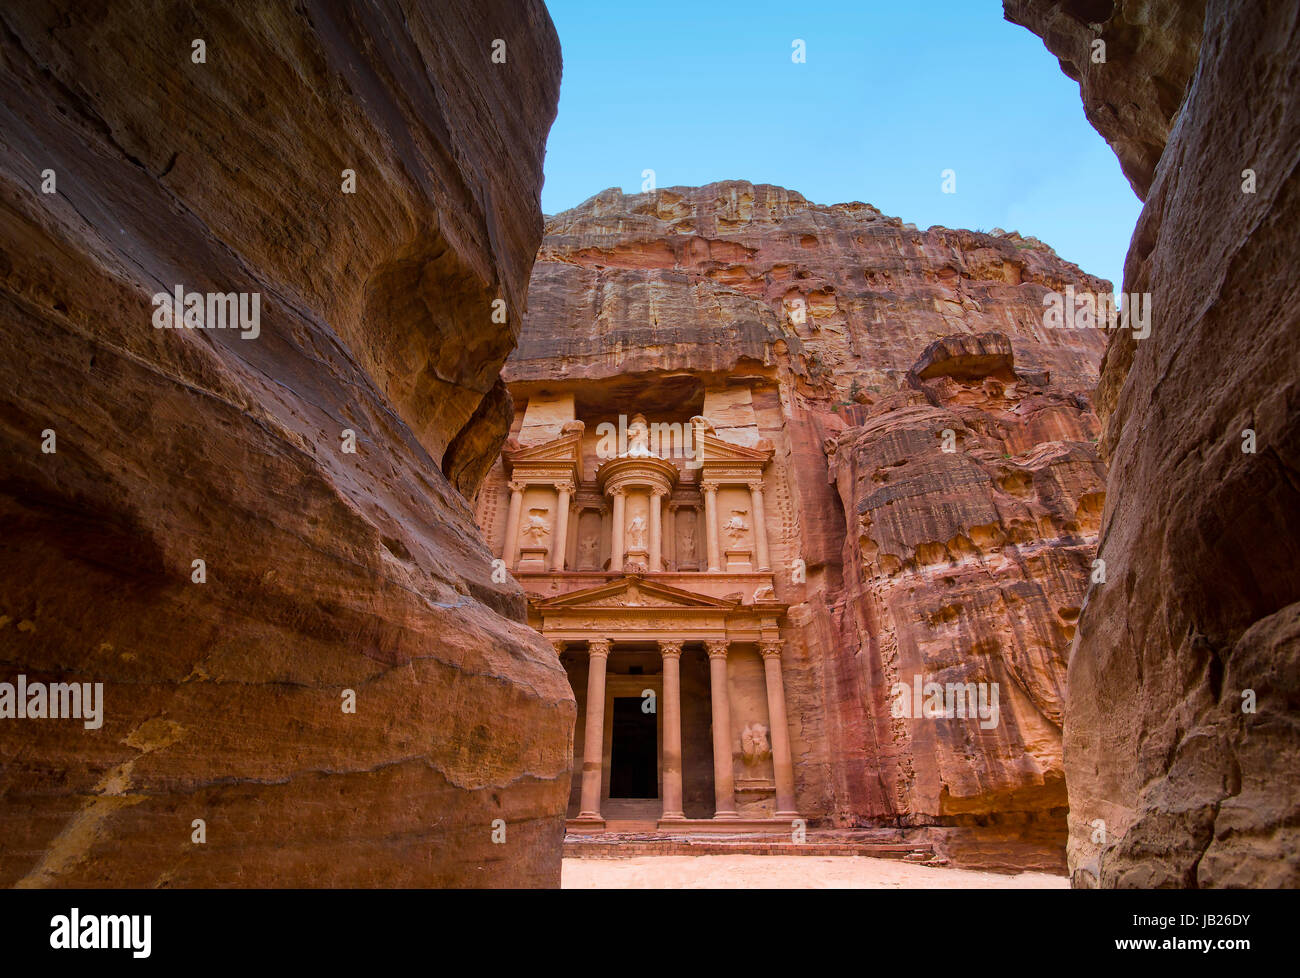 Ancient abandoned rock city of Petra in Jordan tourist attraction - Stock Image